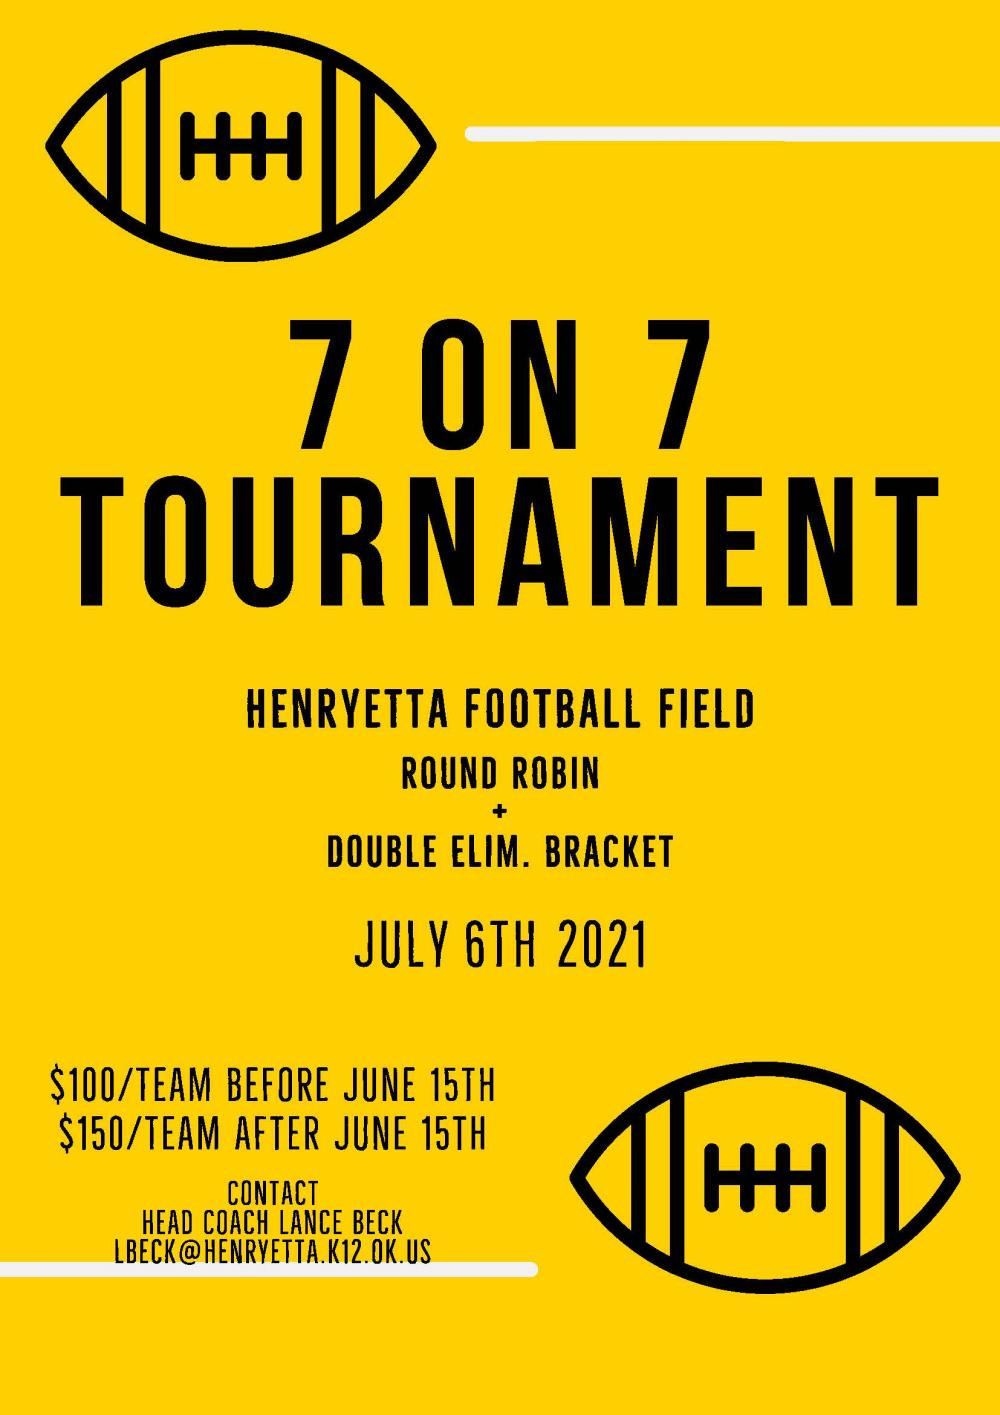 7 on 7 Tournament